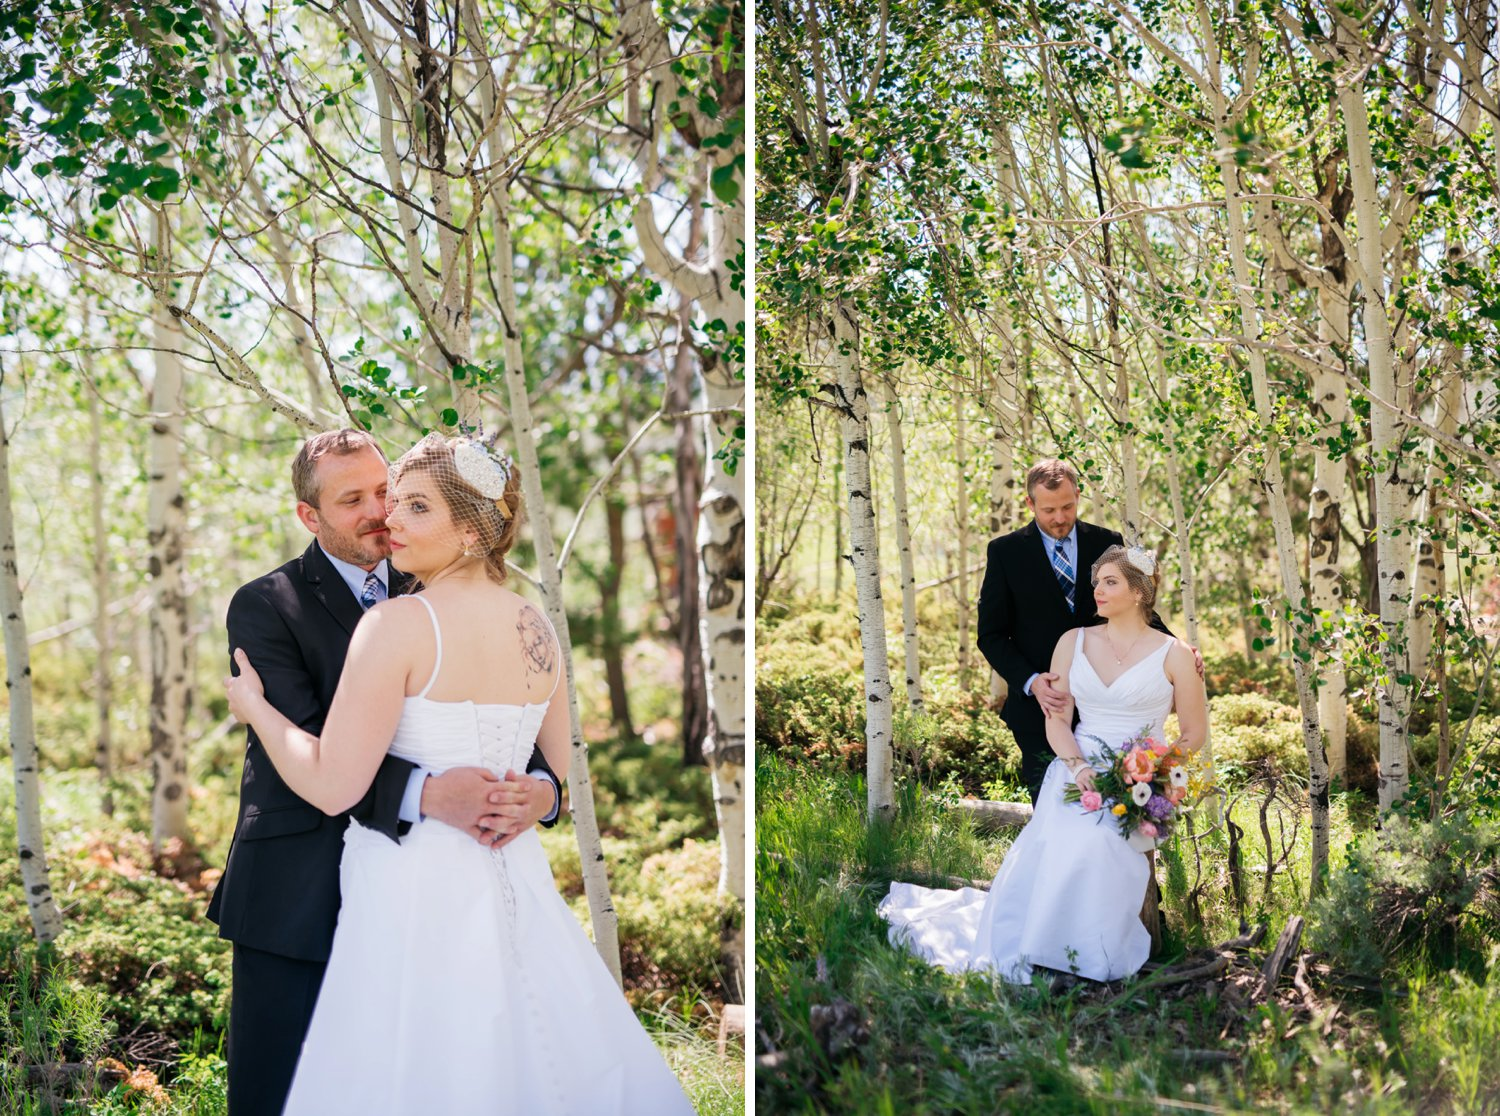 The bride sitting down among the aspen trees with the groom hugging her - this is beautiful! Perfect place for a mountain wedding! Photo by Maddie Mae Photography